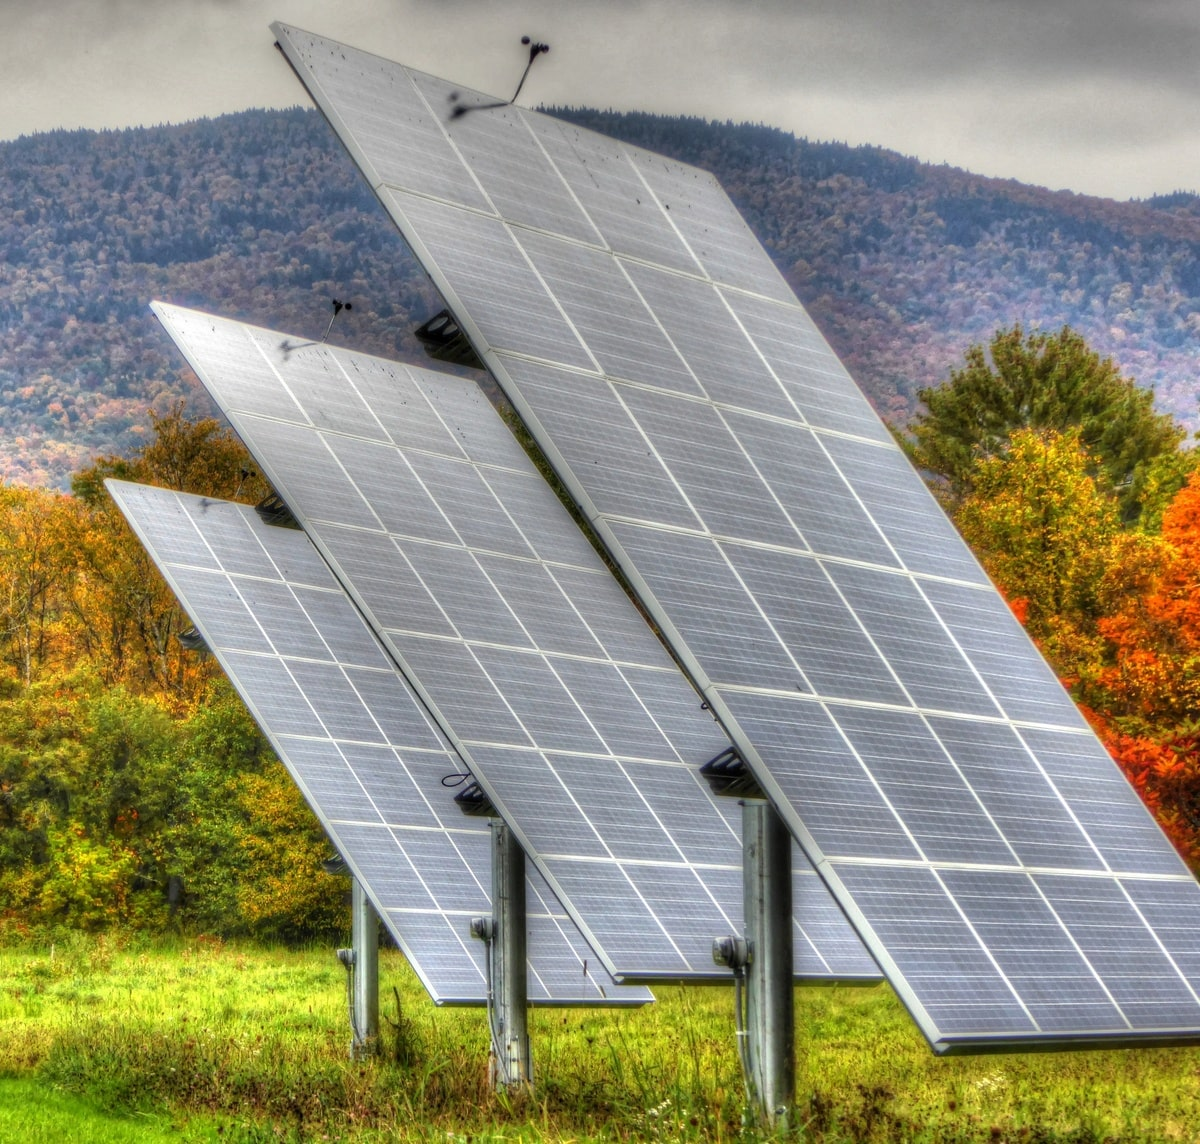 Electricite et chauffage Weishaar projet solaire